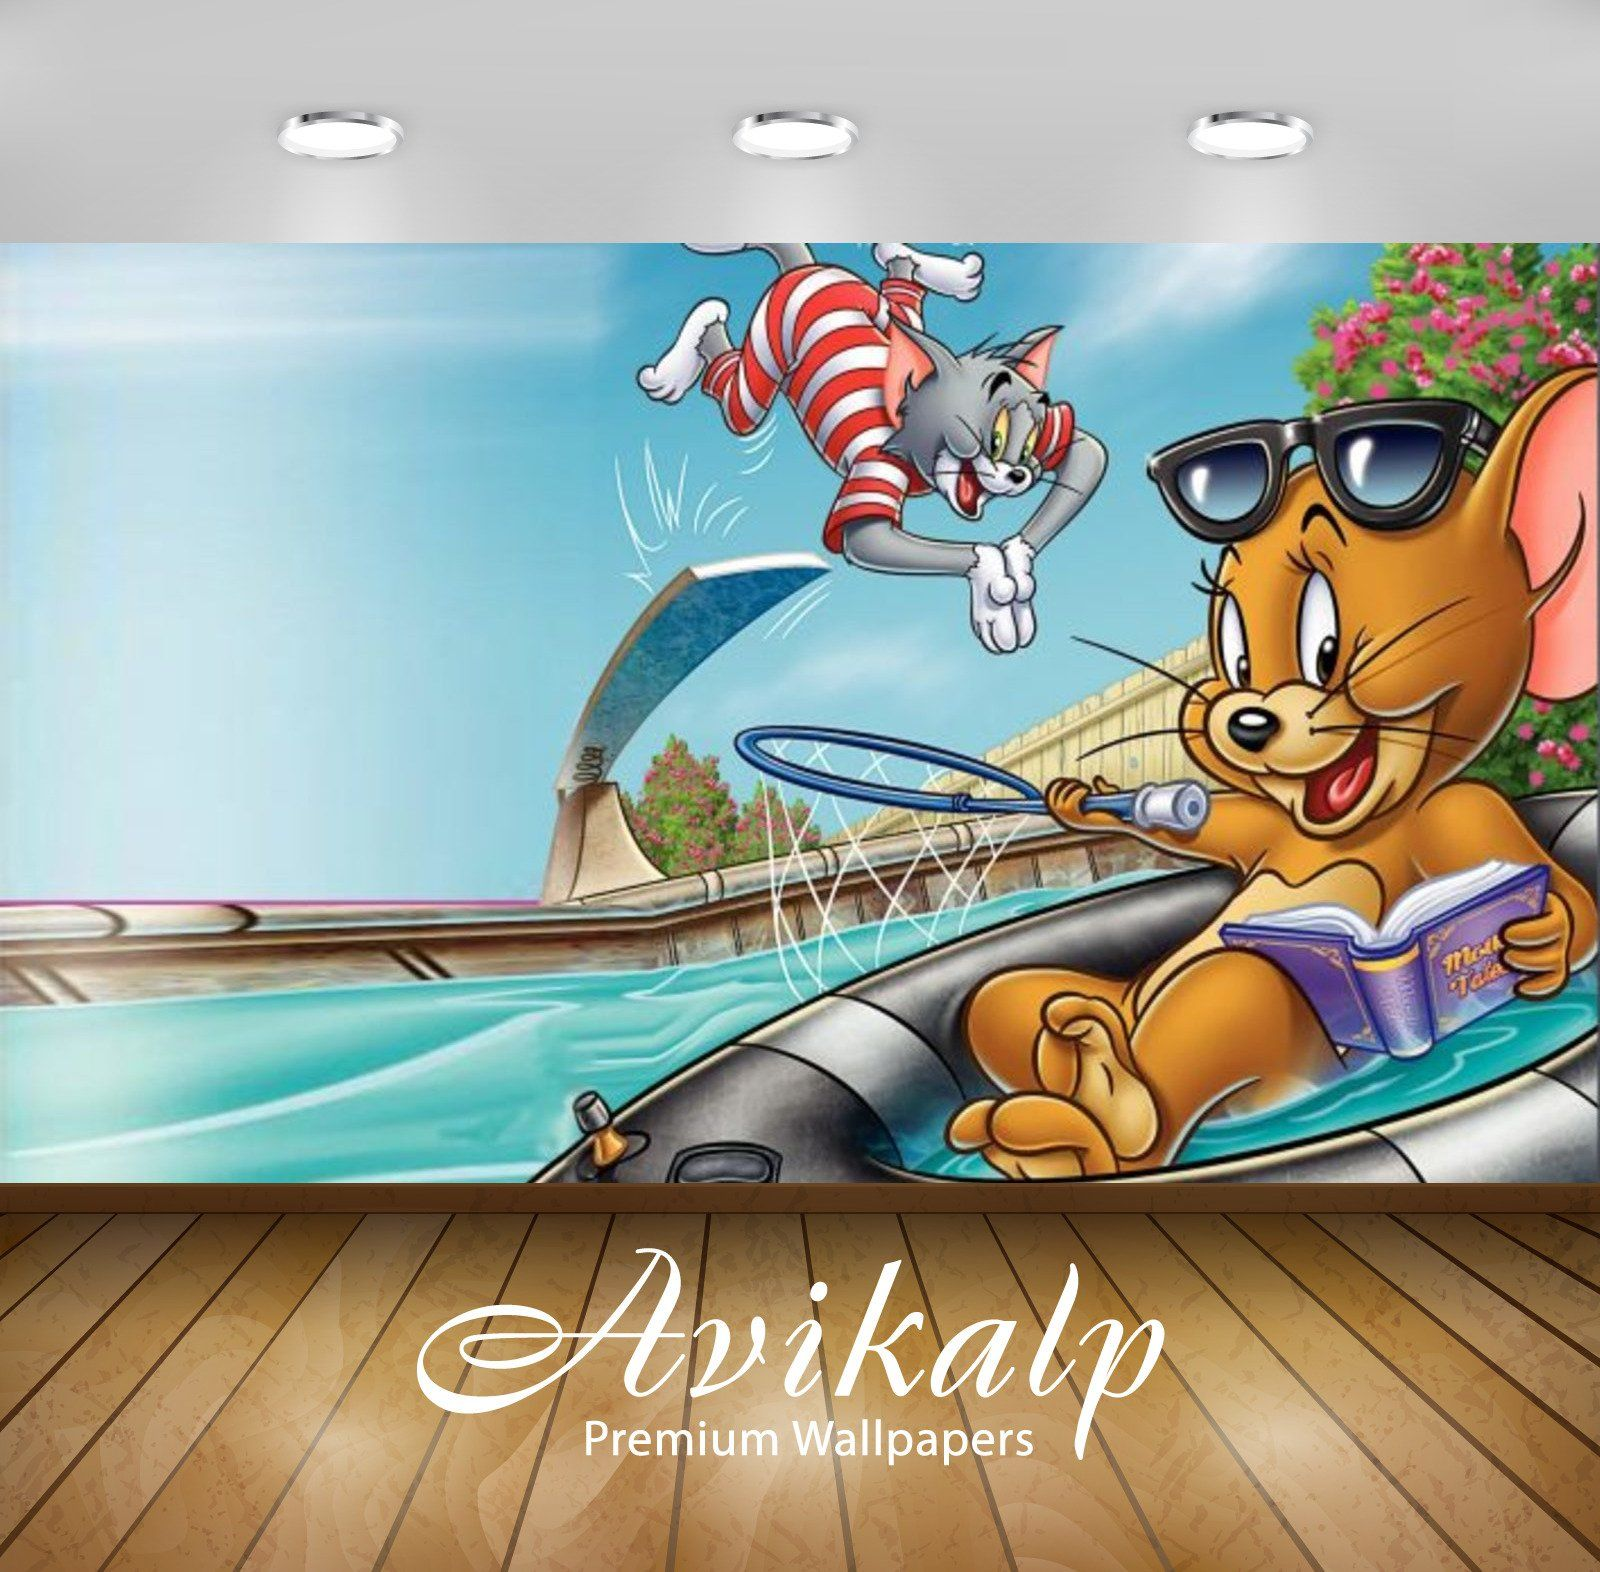 Avikalp Exclusive Awi2262 Tom and Jerry Fur Flying Full HD